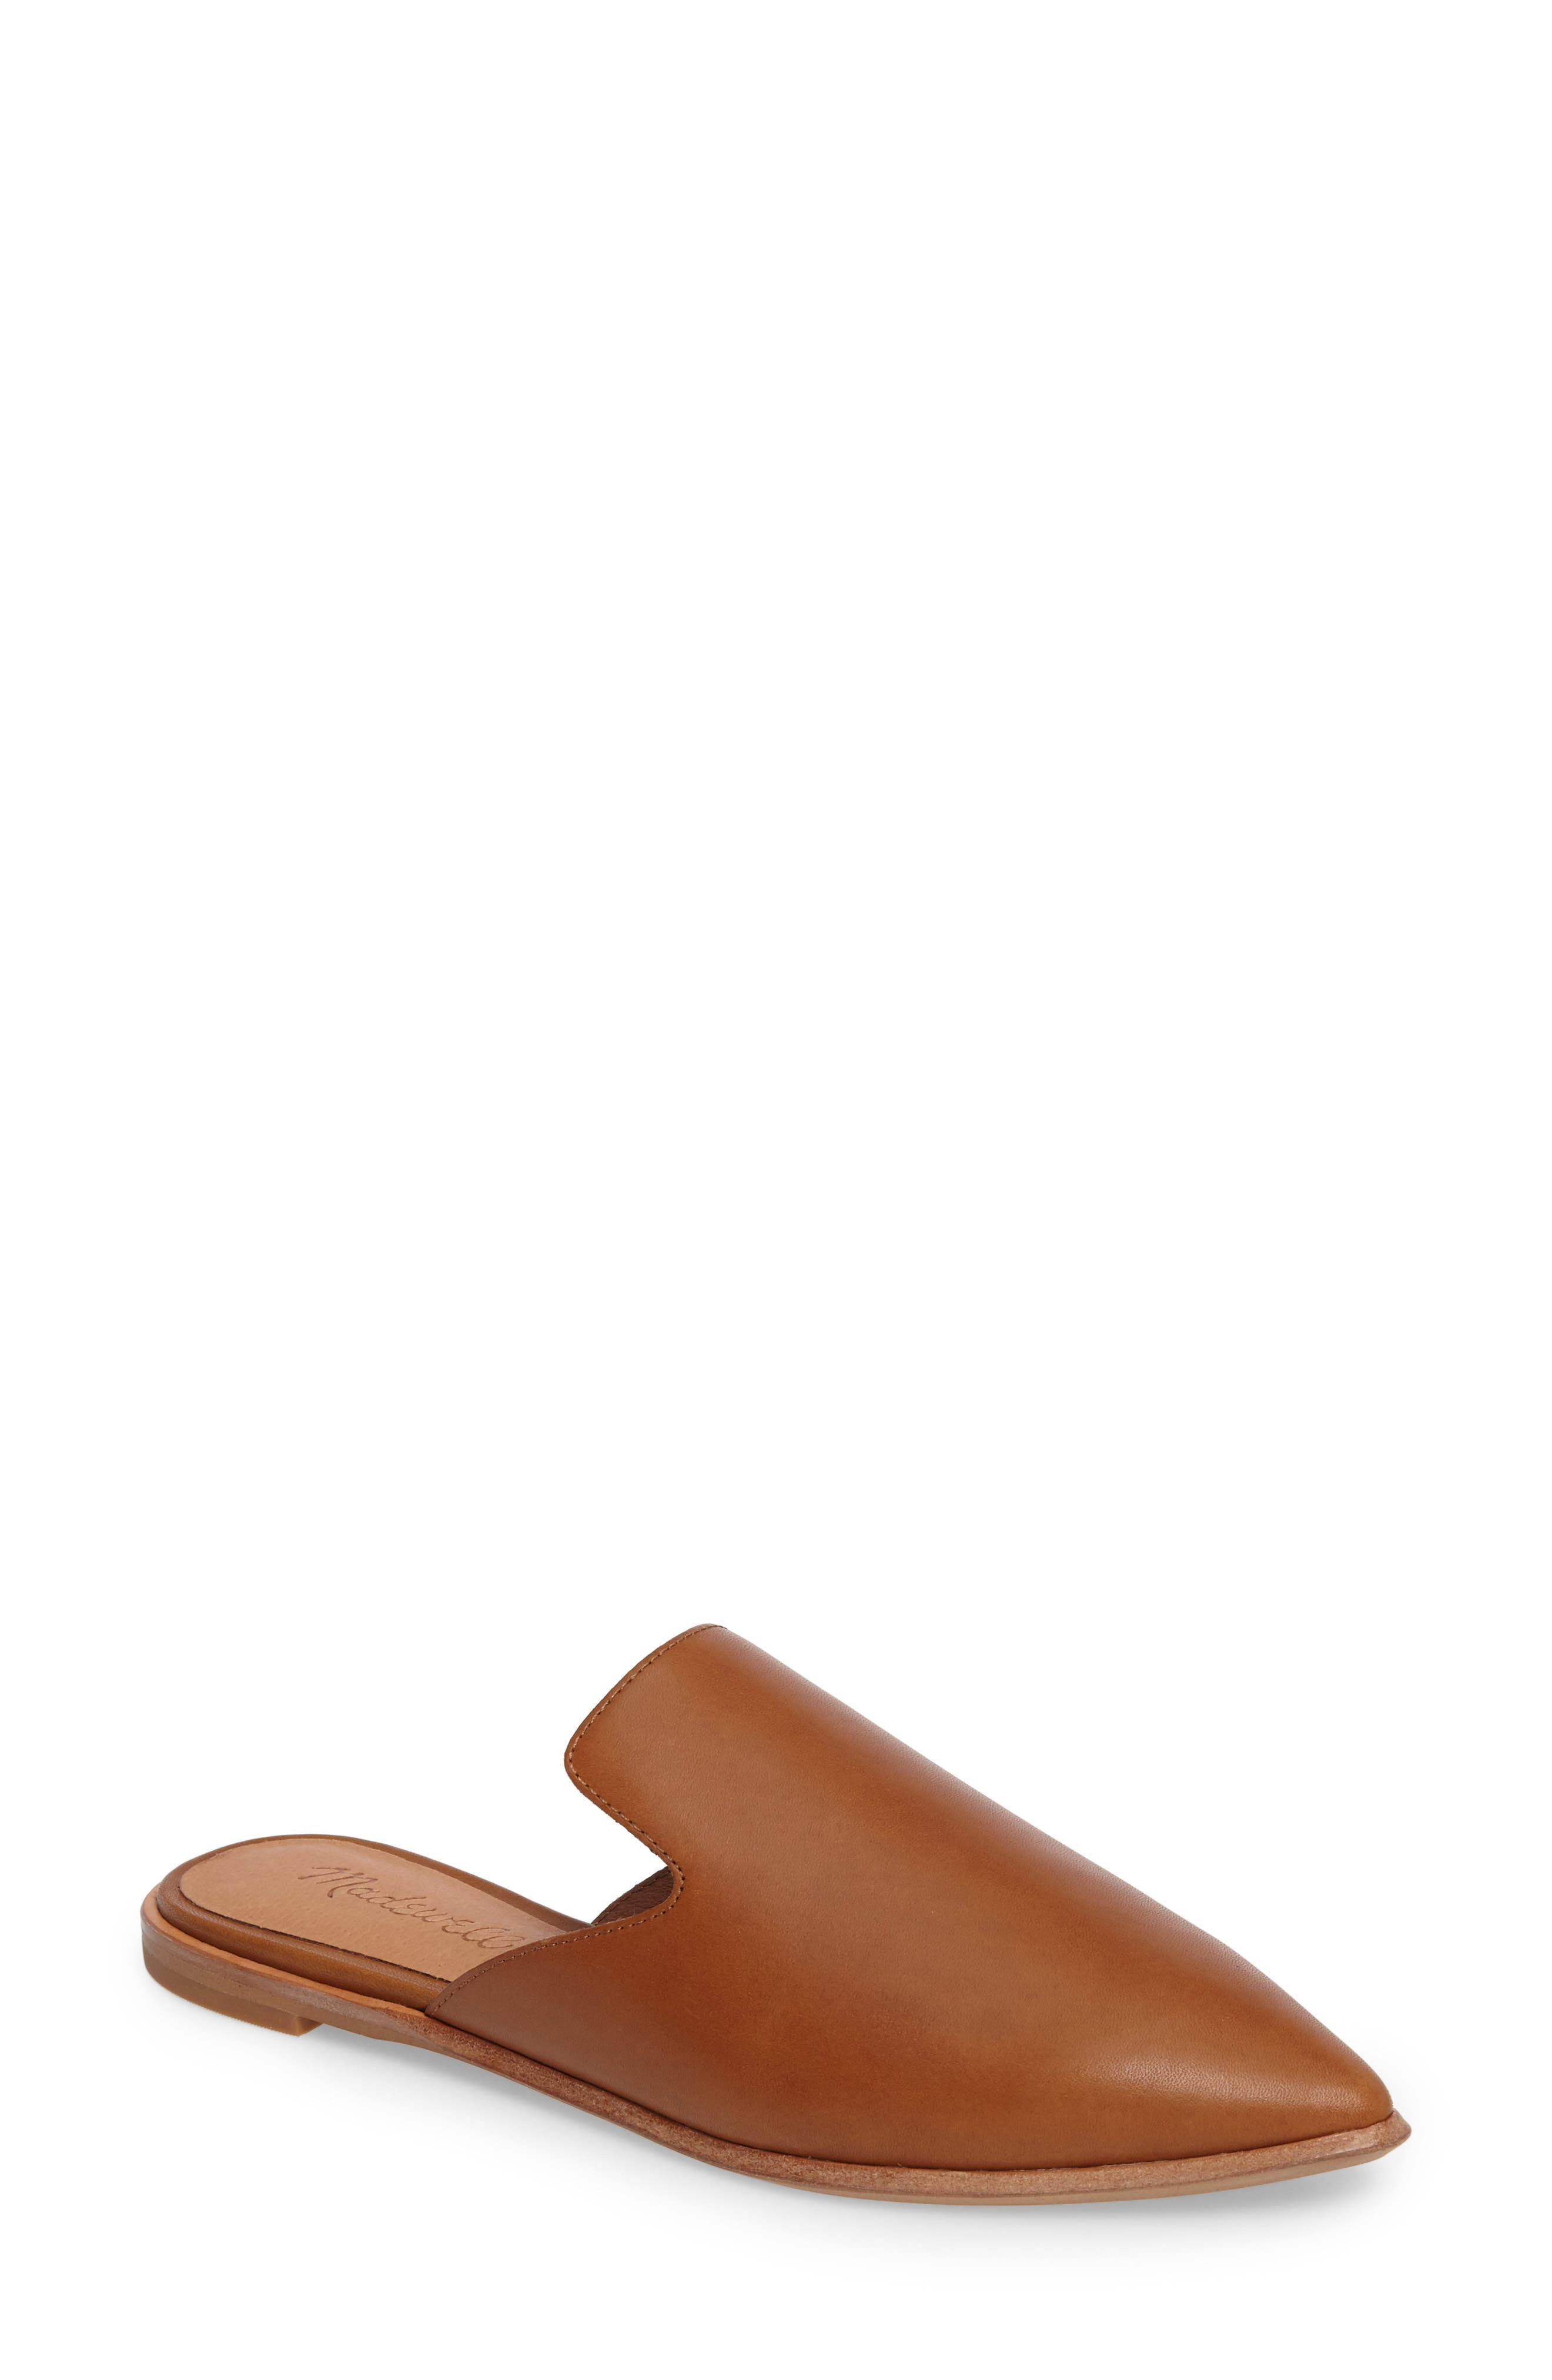 Main Image - Madewell The Gemma Pointy Toe Mule (Women)